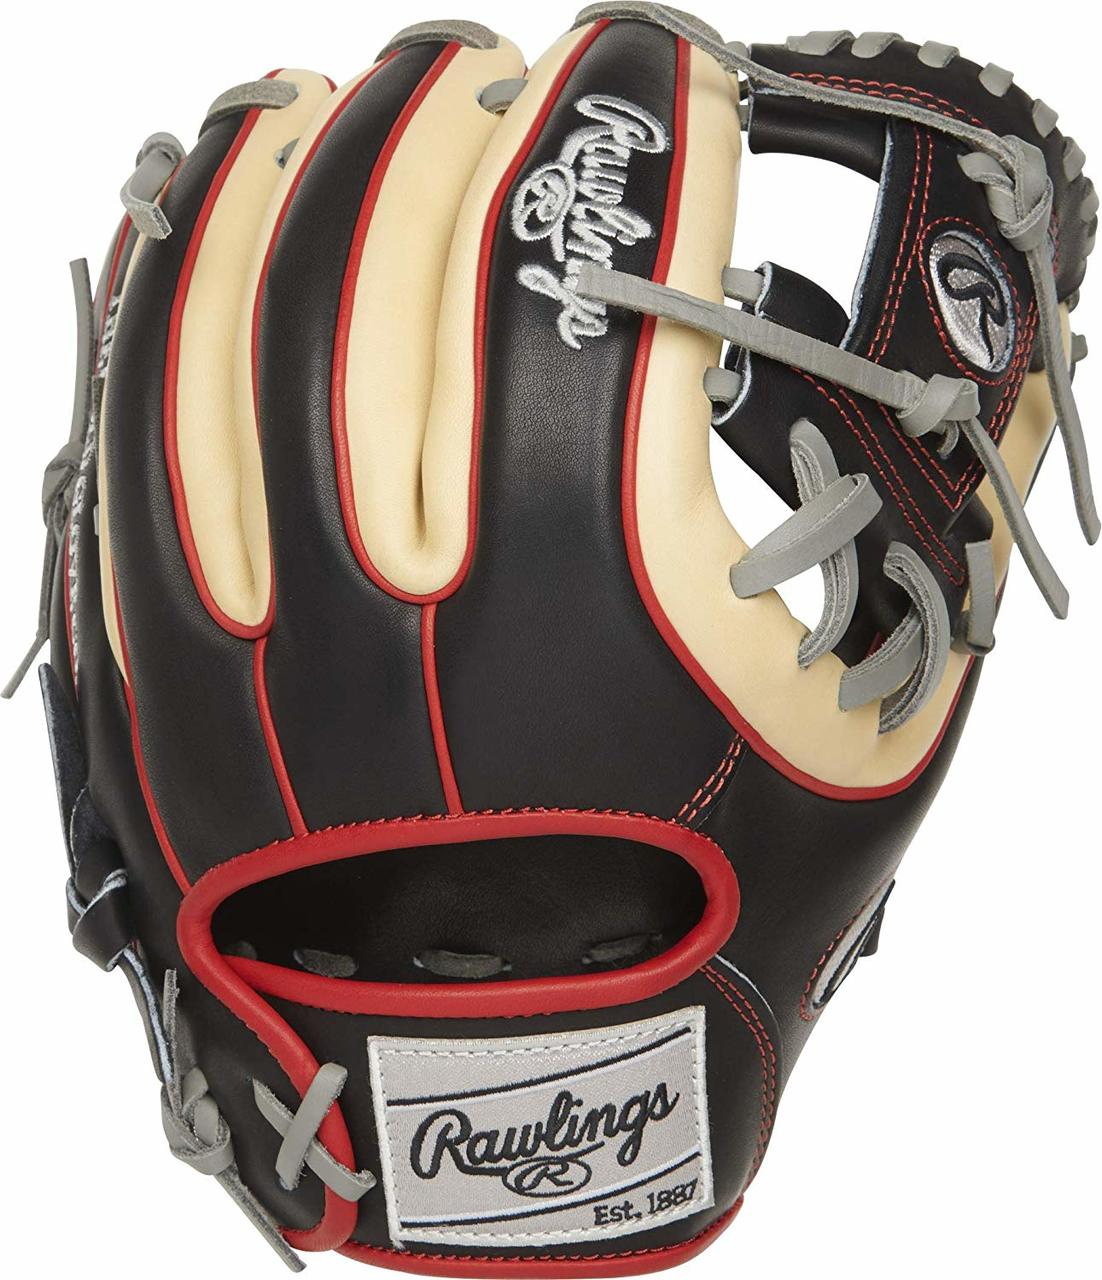 rawlings-heart-of-the-hide-11-5-baseball-glove-r2g-i-web-right-hand-throw PROR314-2B-RightHandThrow  083321598968 The 11. 5-inch Heart of the Hide R2G infield glove provides